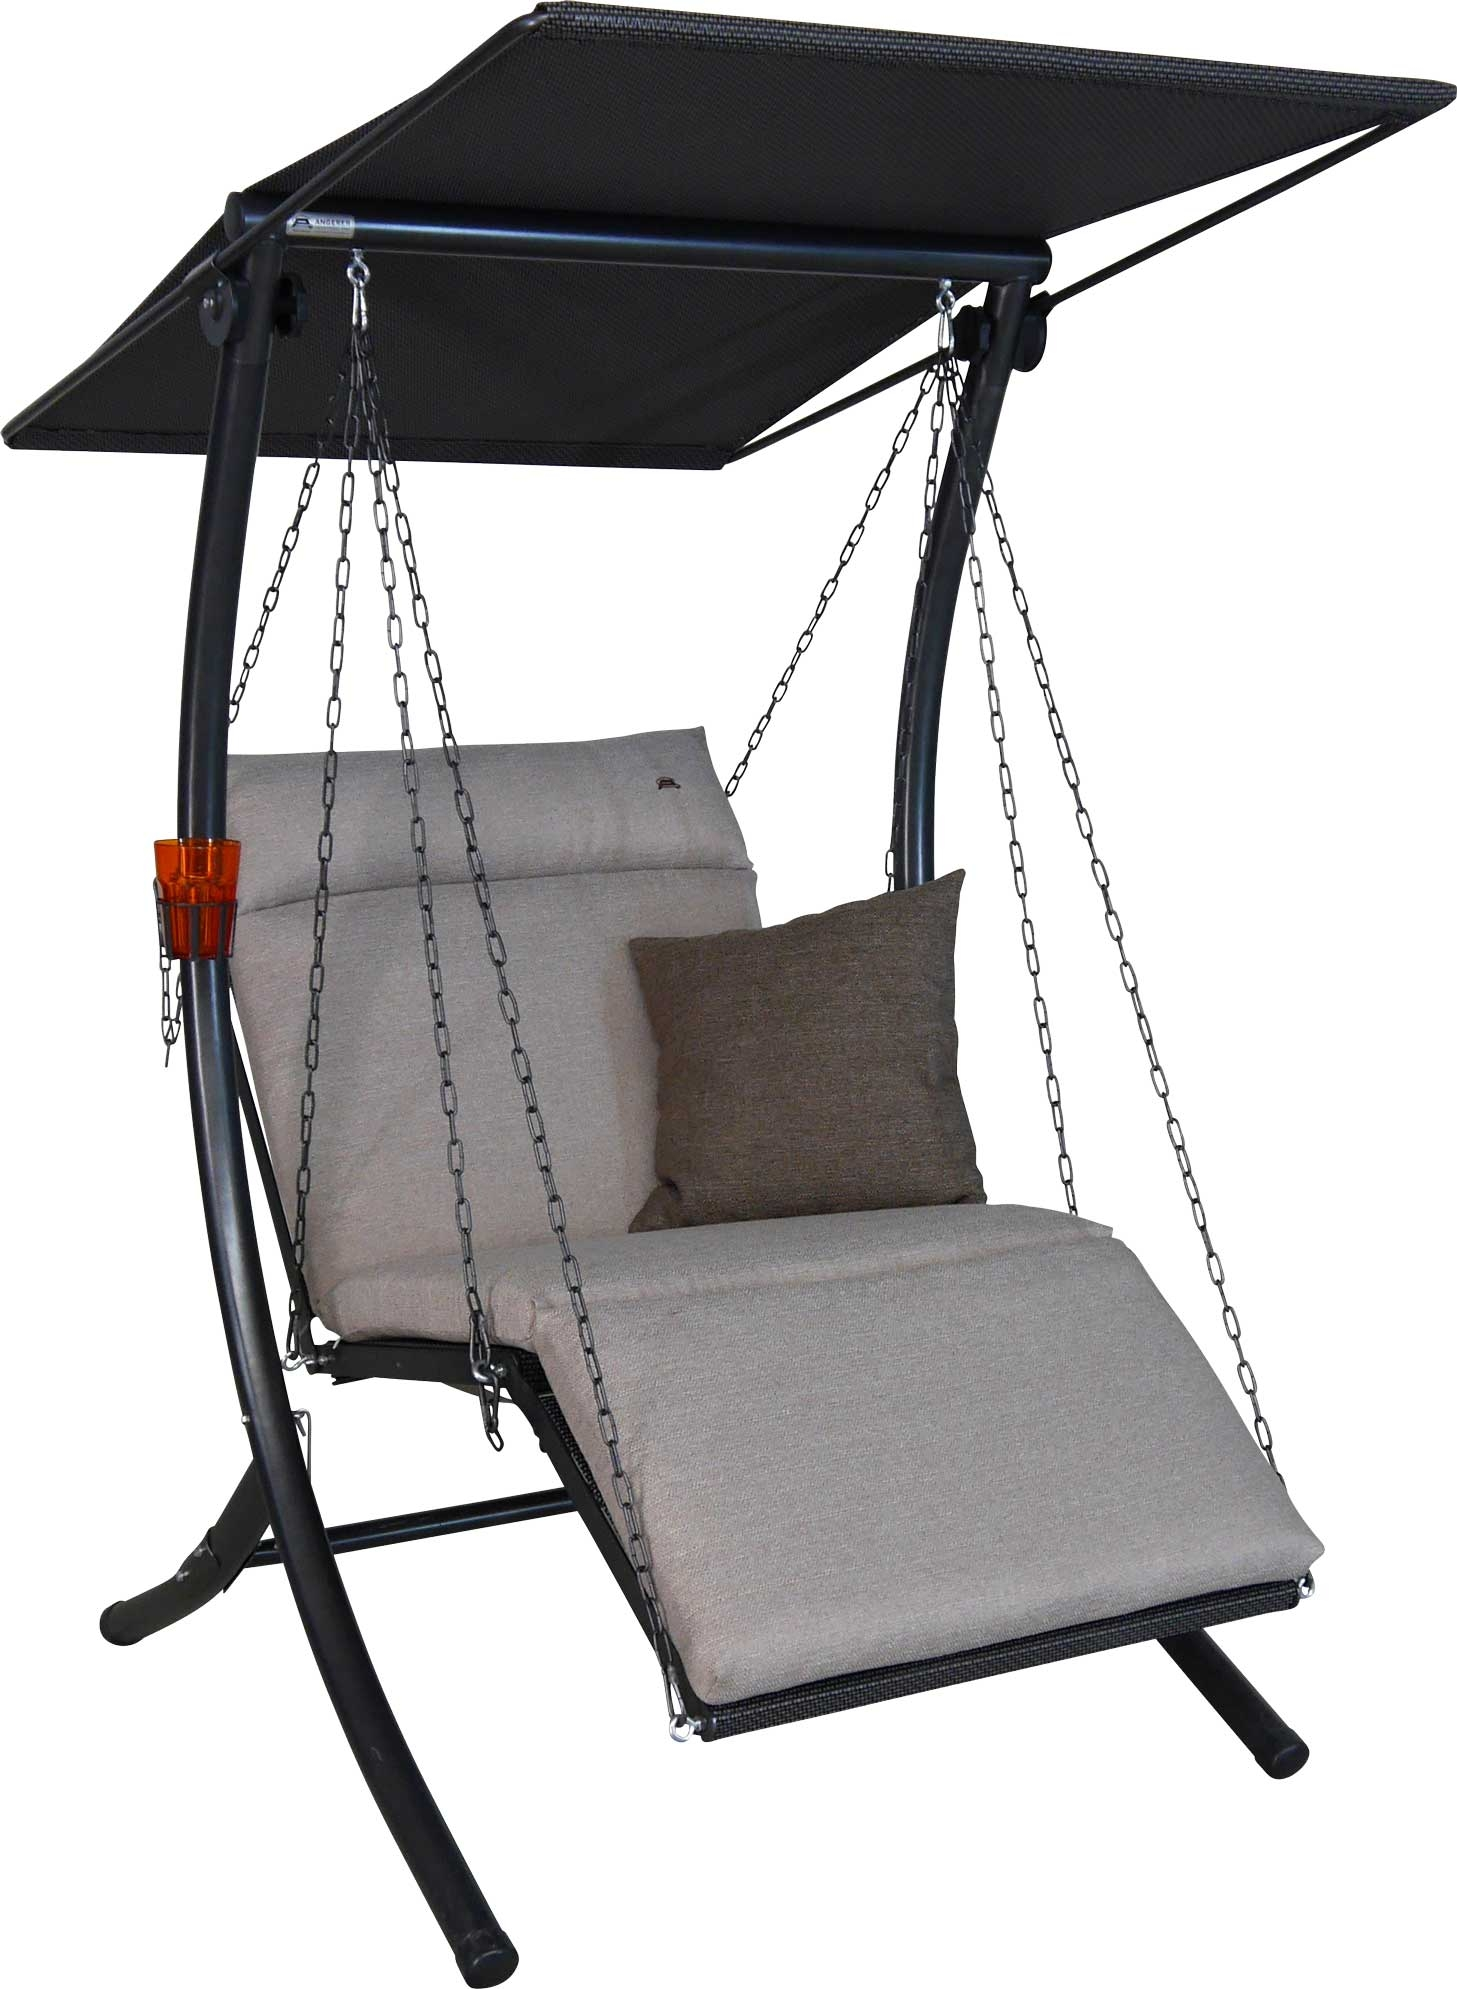 Angerer Hollywoodschaukel 1-Sitzer Swing Smart sand